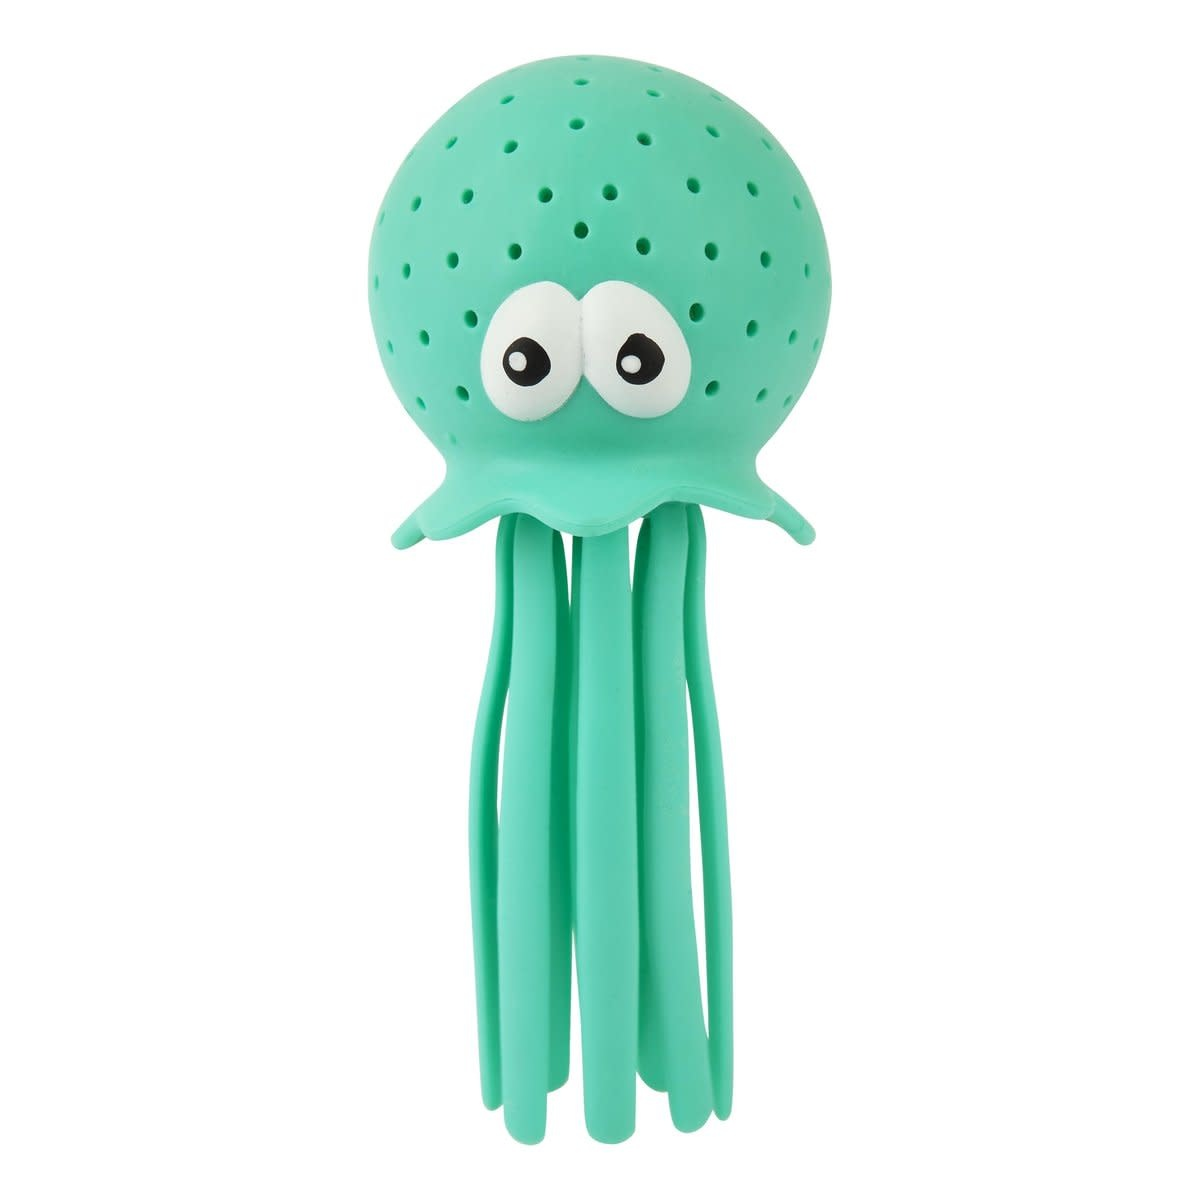 Sunny Life Octopus Bath Squirter Turquoise